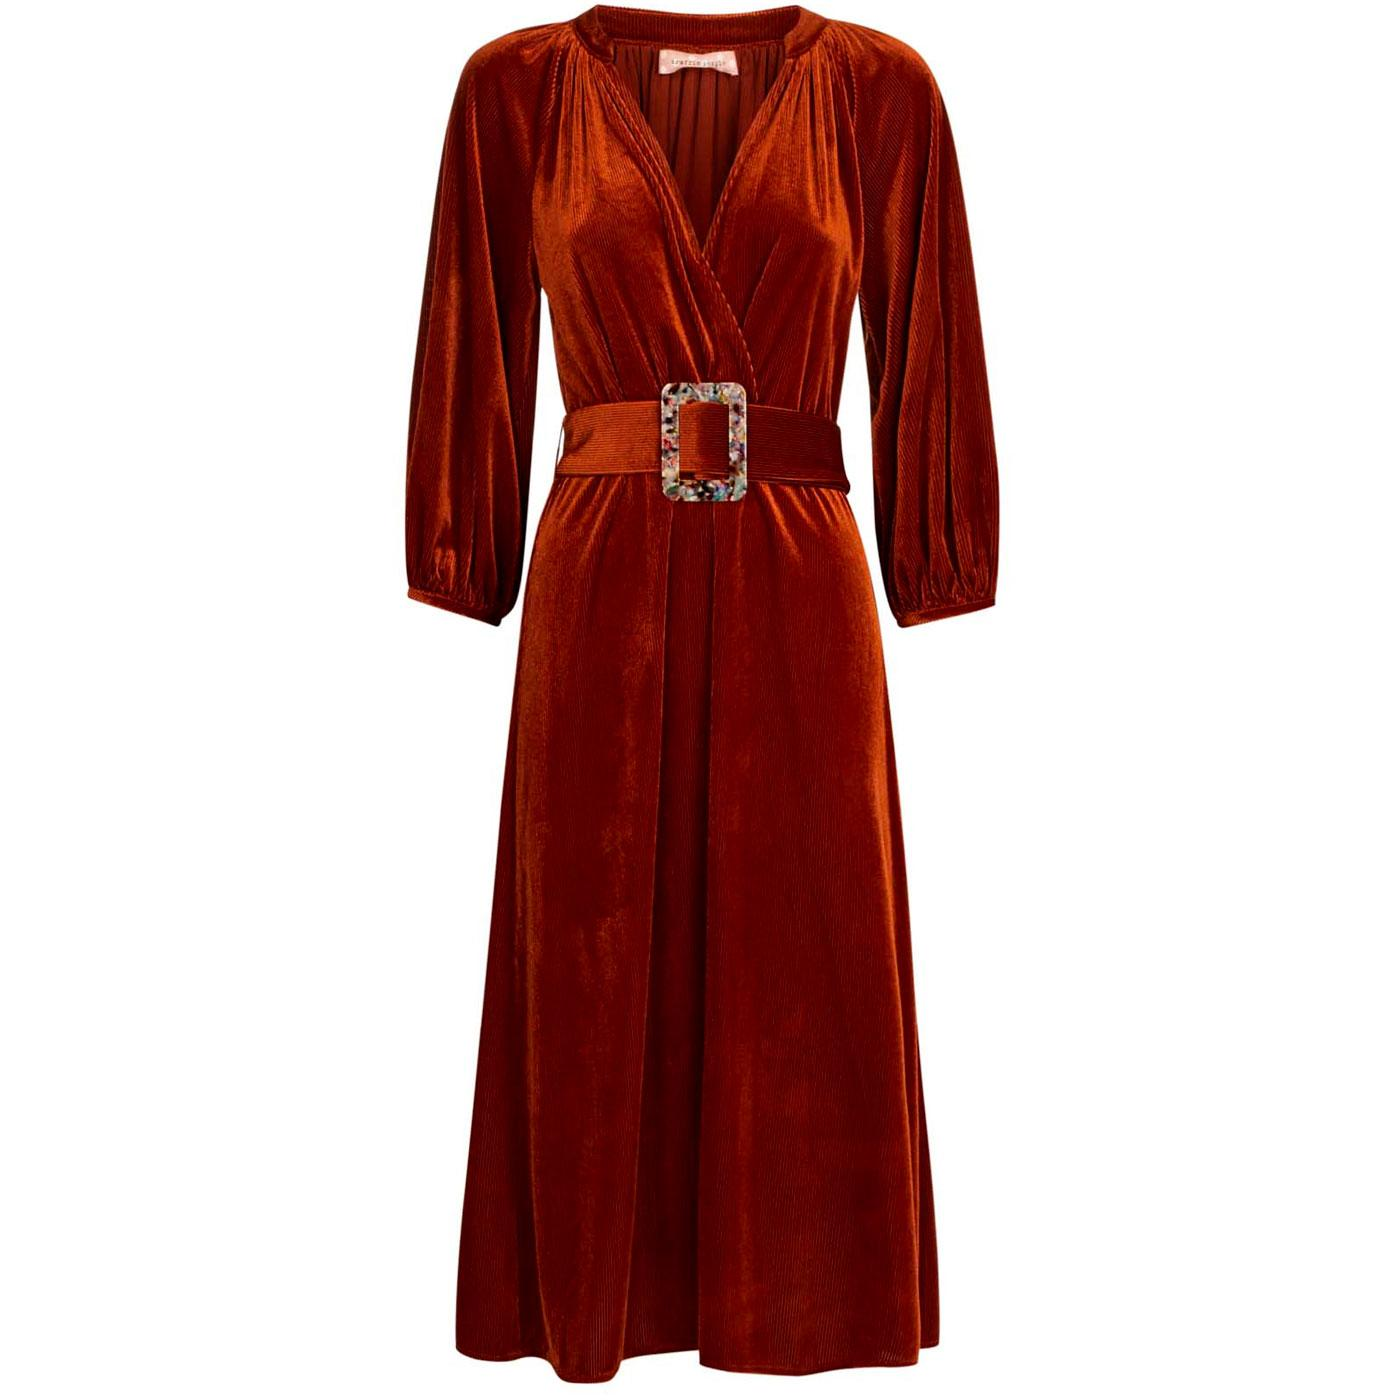 Belt Up TRAFFIC PEOPLE 70s Velvet Cord Belt Dress